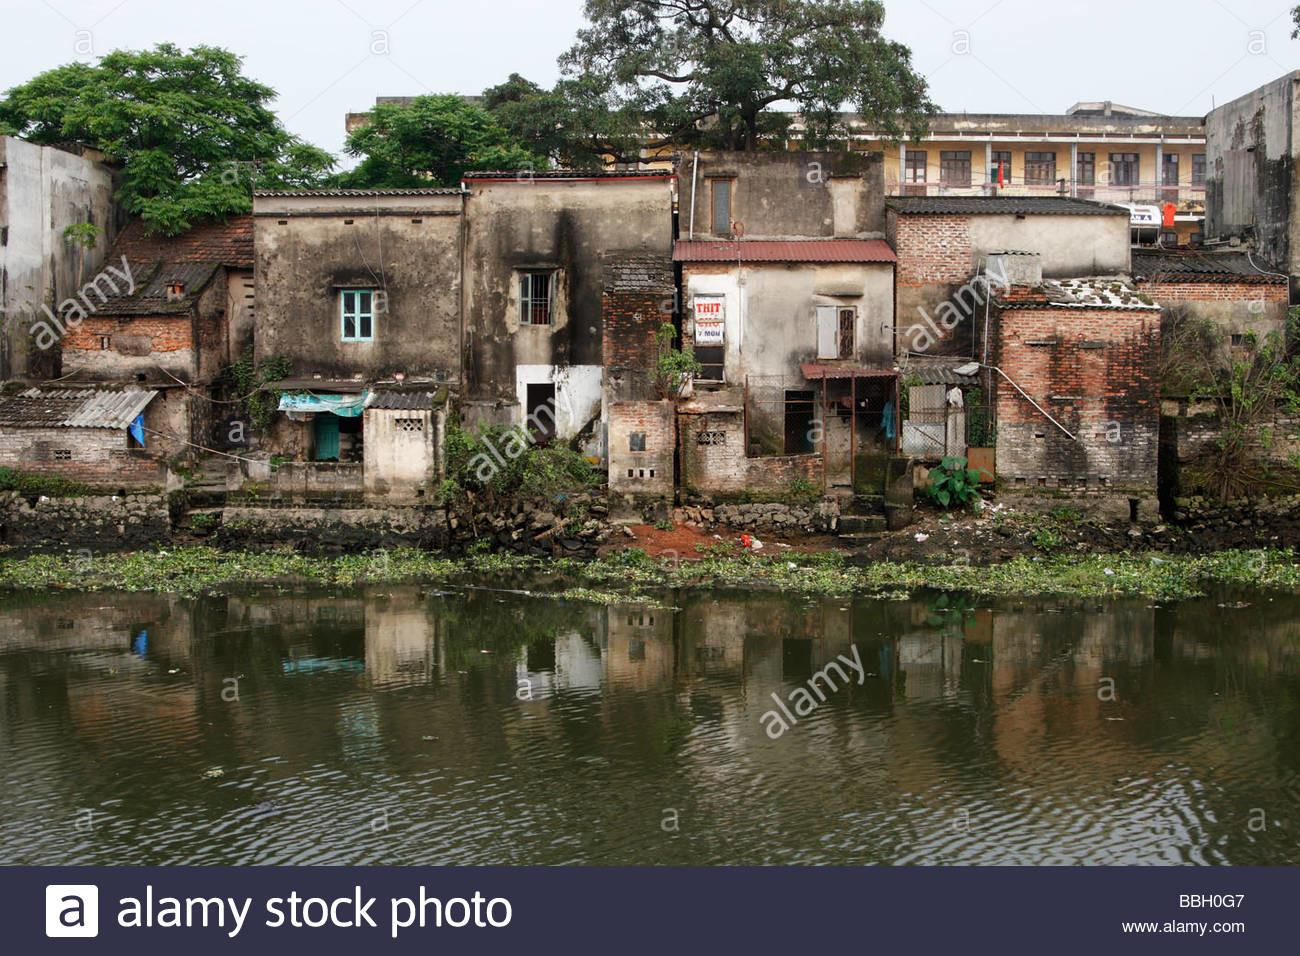 Derelict Old Houses Along City Canal Poor Urban Slum